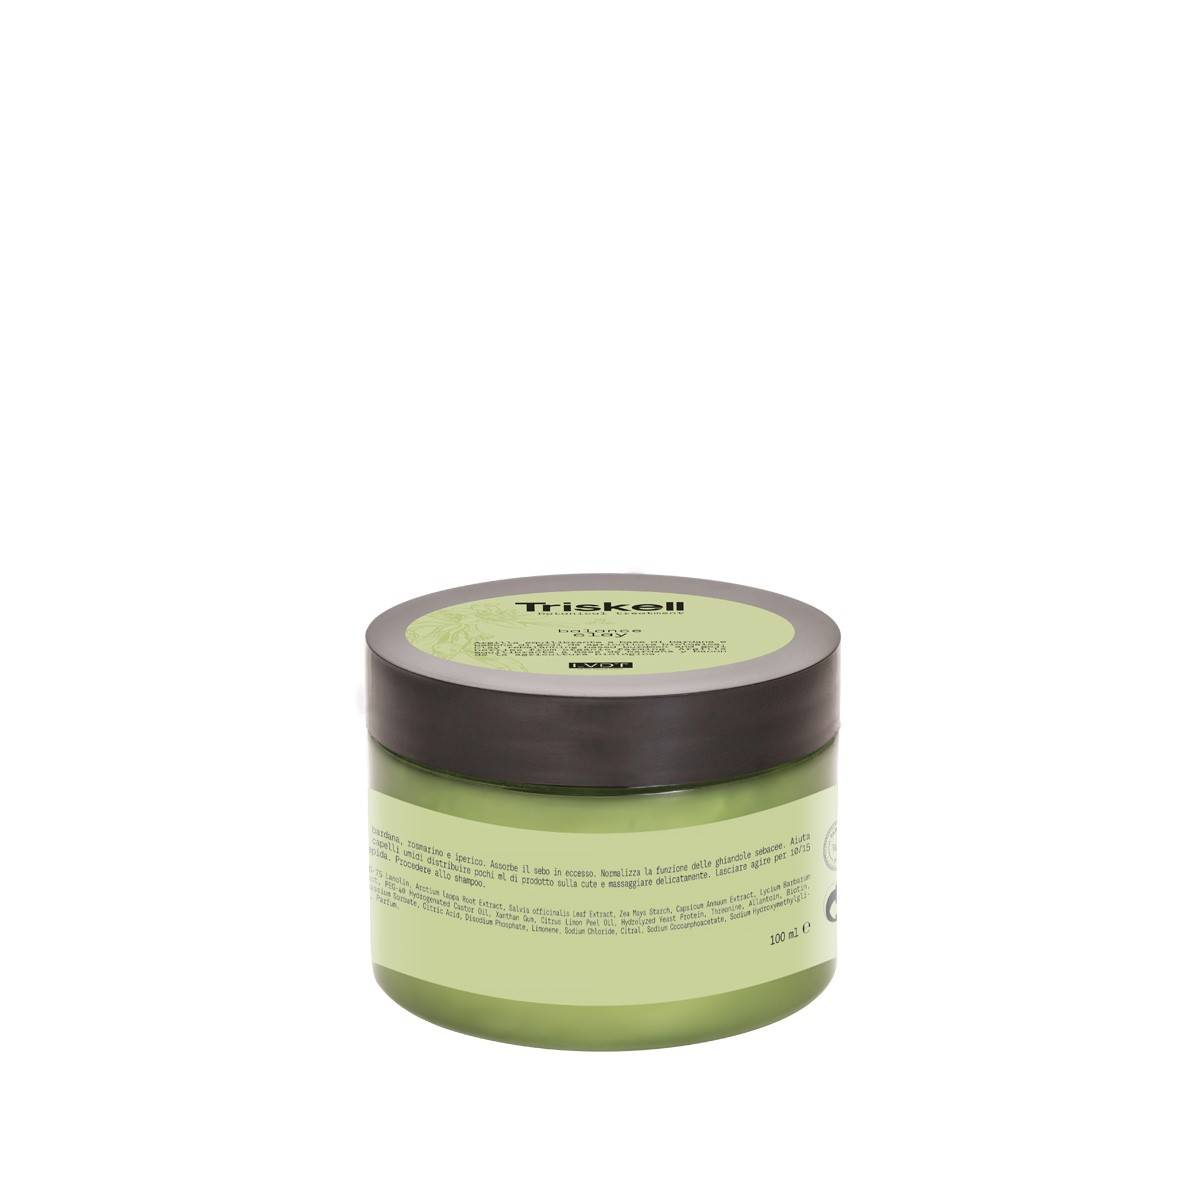 Balance Clay 100ml Triskell Nuova Botanical Treatment